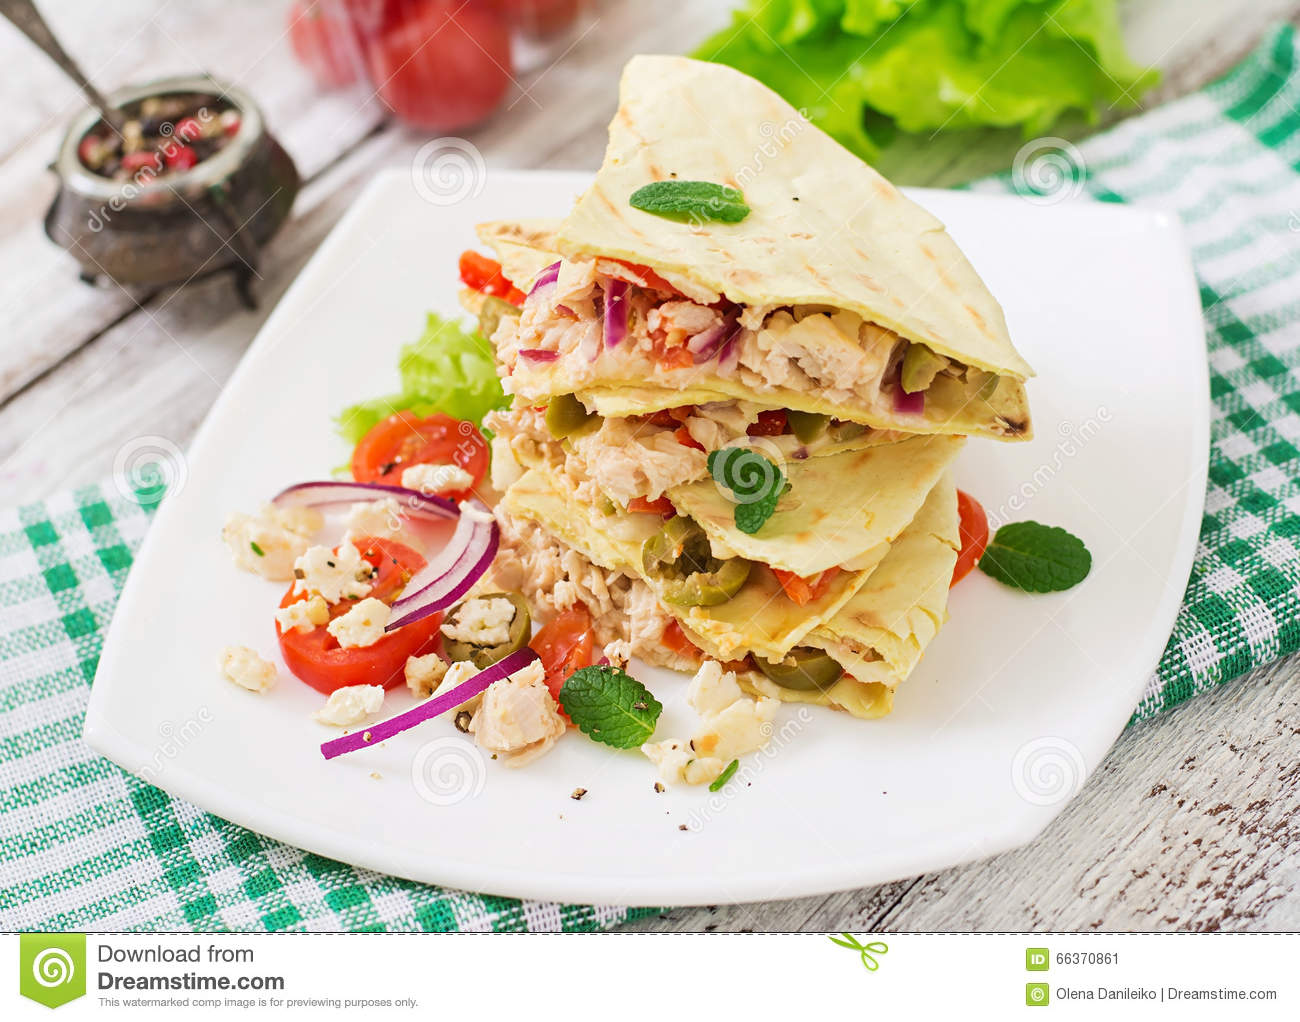 Mexican Quesadilla wrap with chicken, olives, sweet pepper and salad.